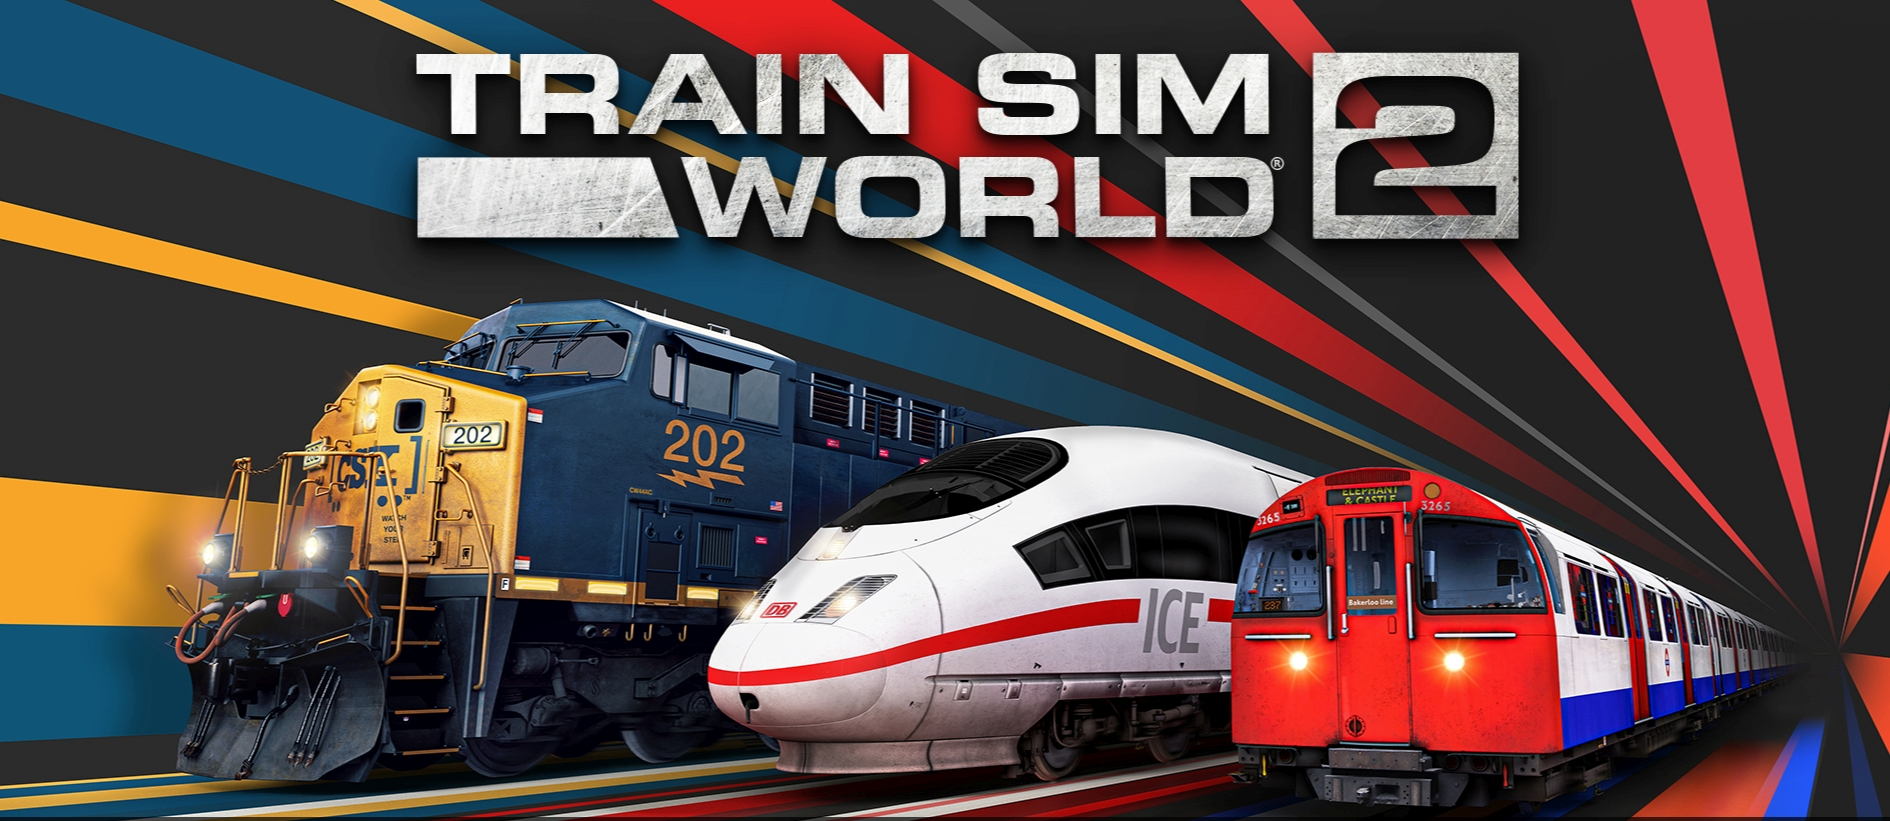 Dovetail Games' Train Sim World 2 Arrives On PC And Consoles On August 6